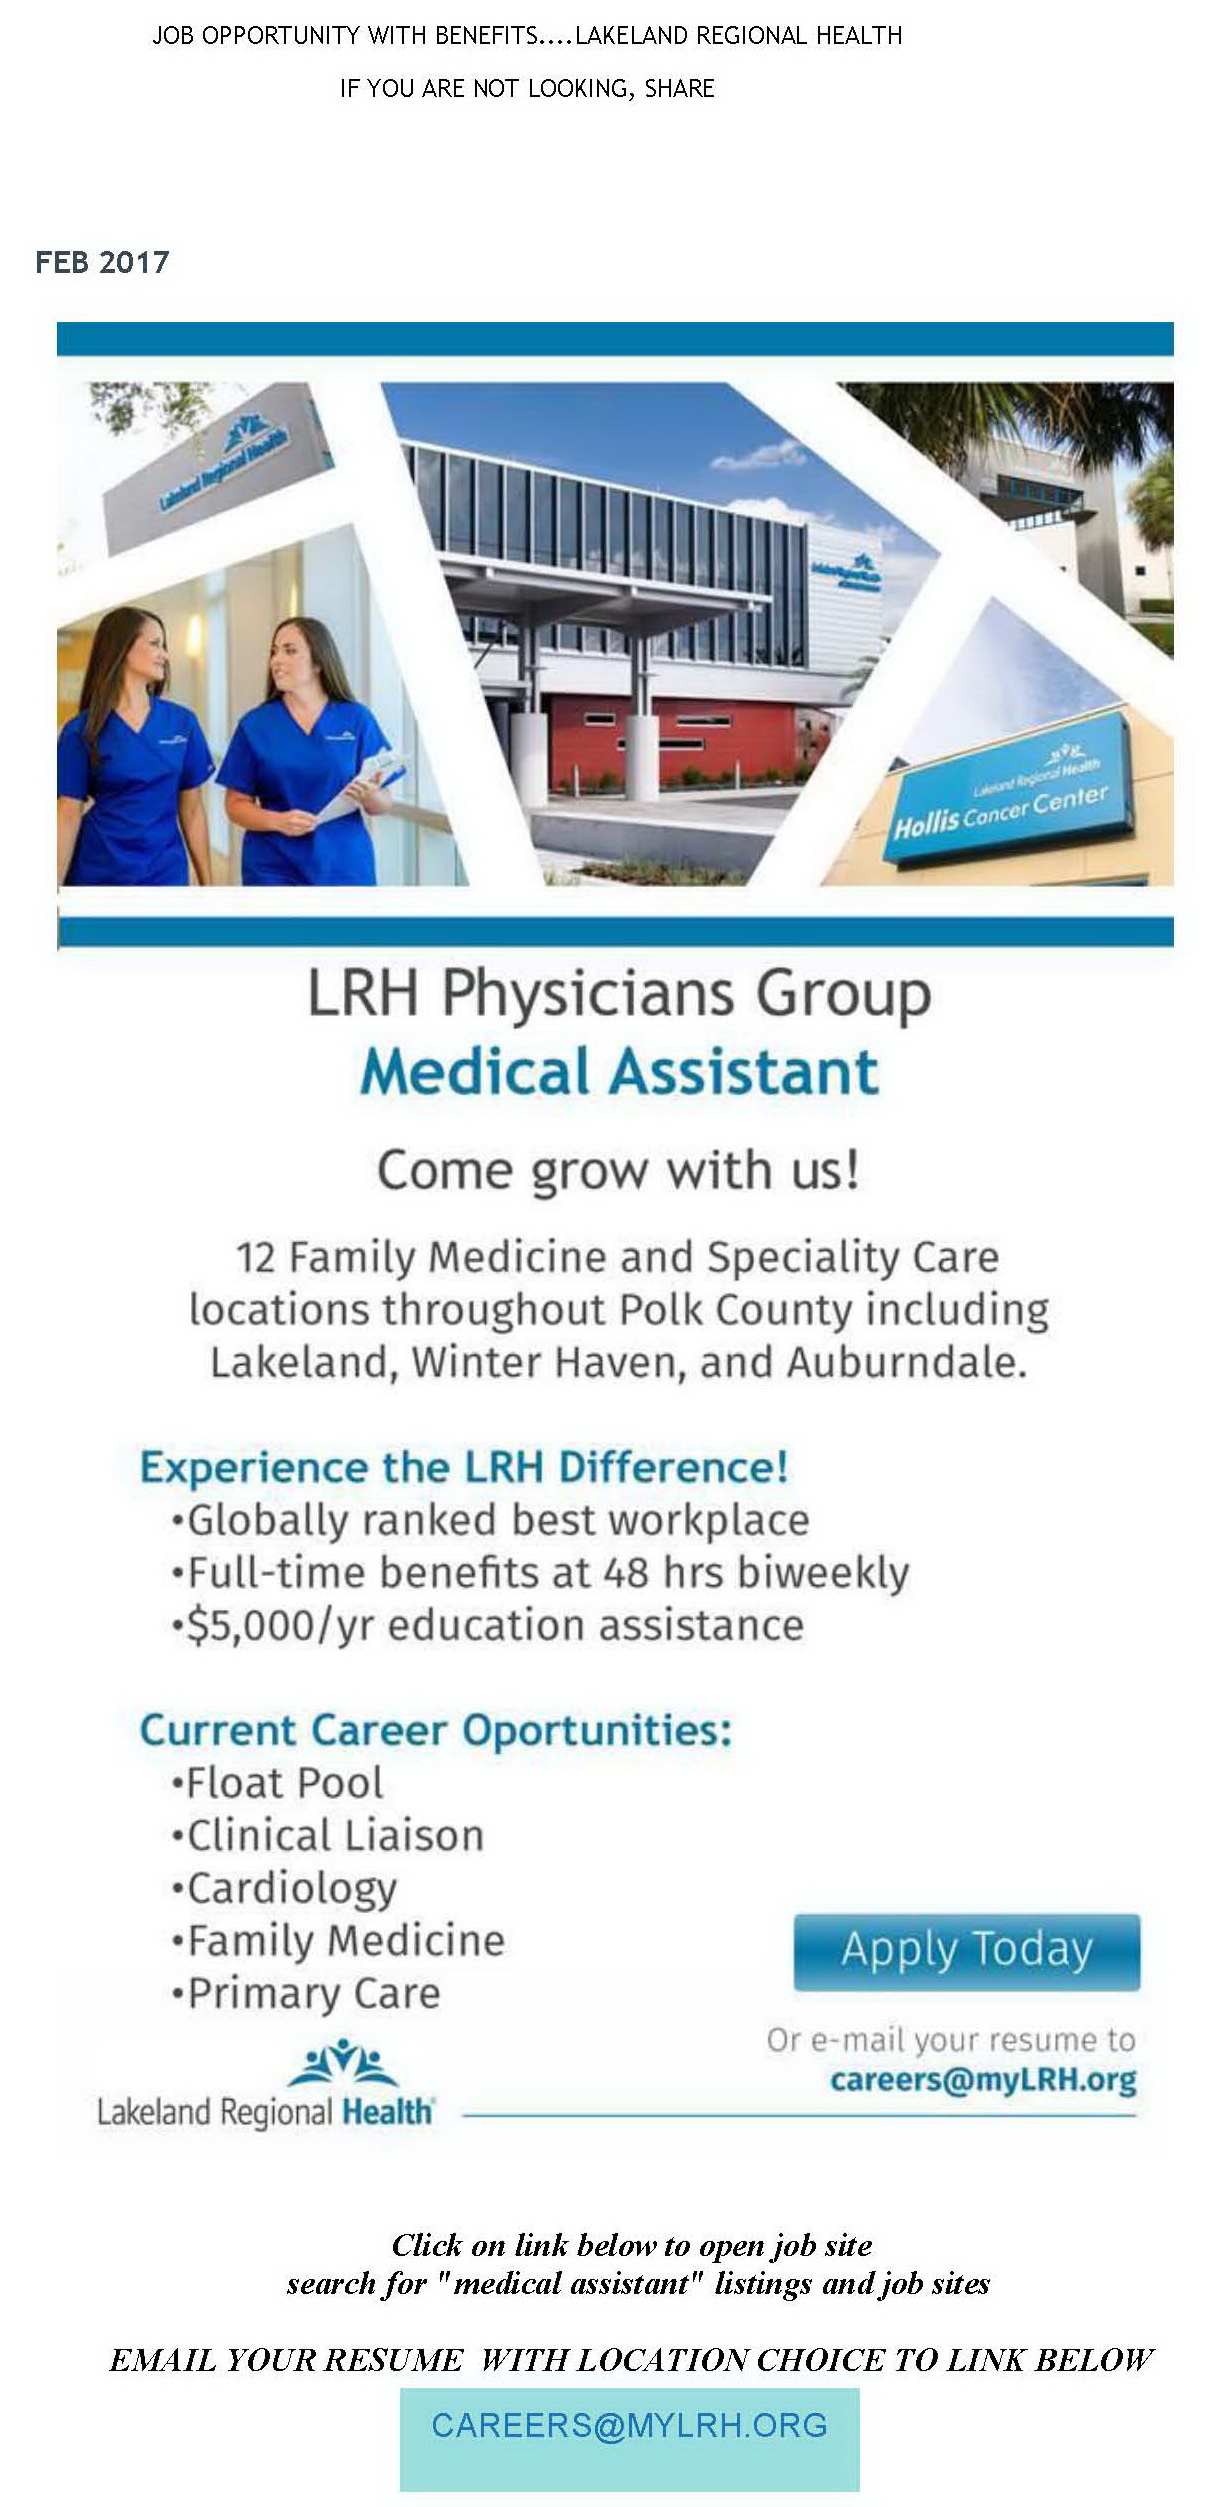 central florida chapter - Clinical Liaison Jobs